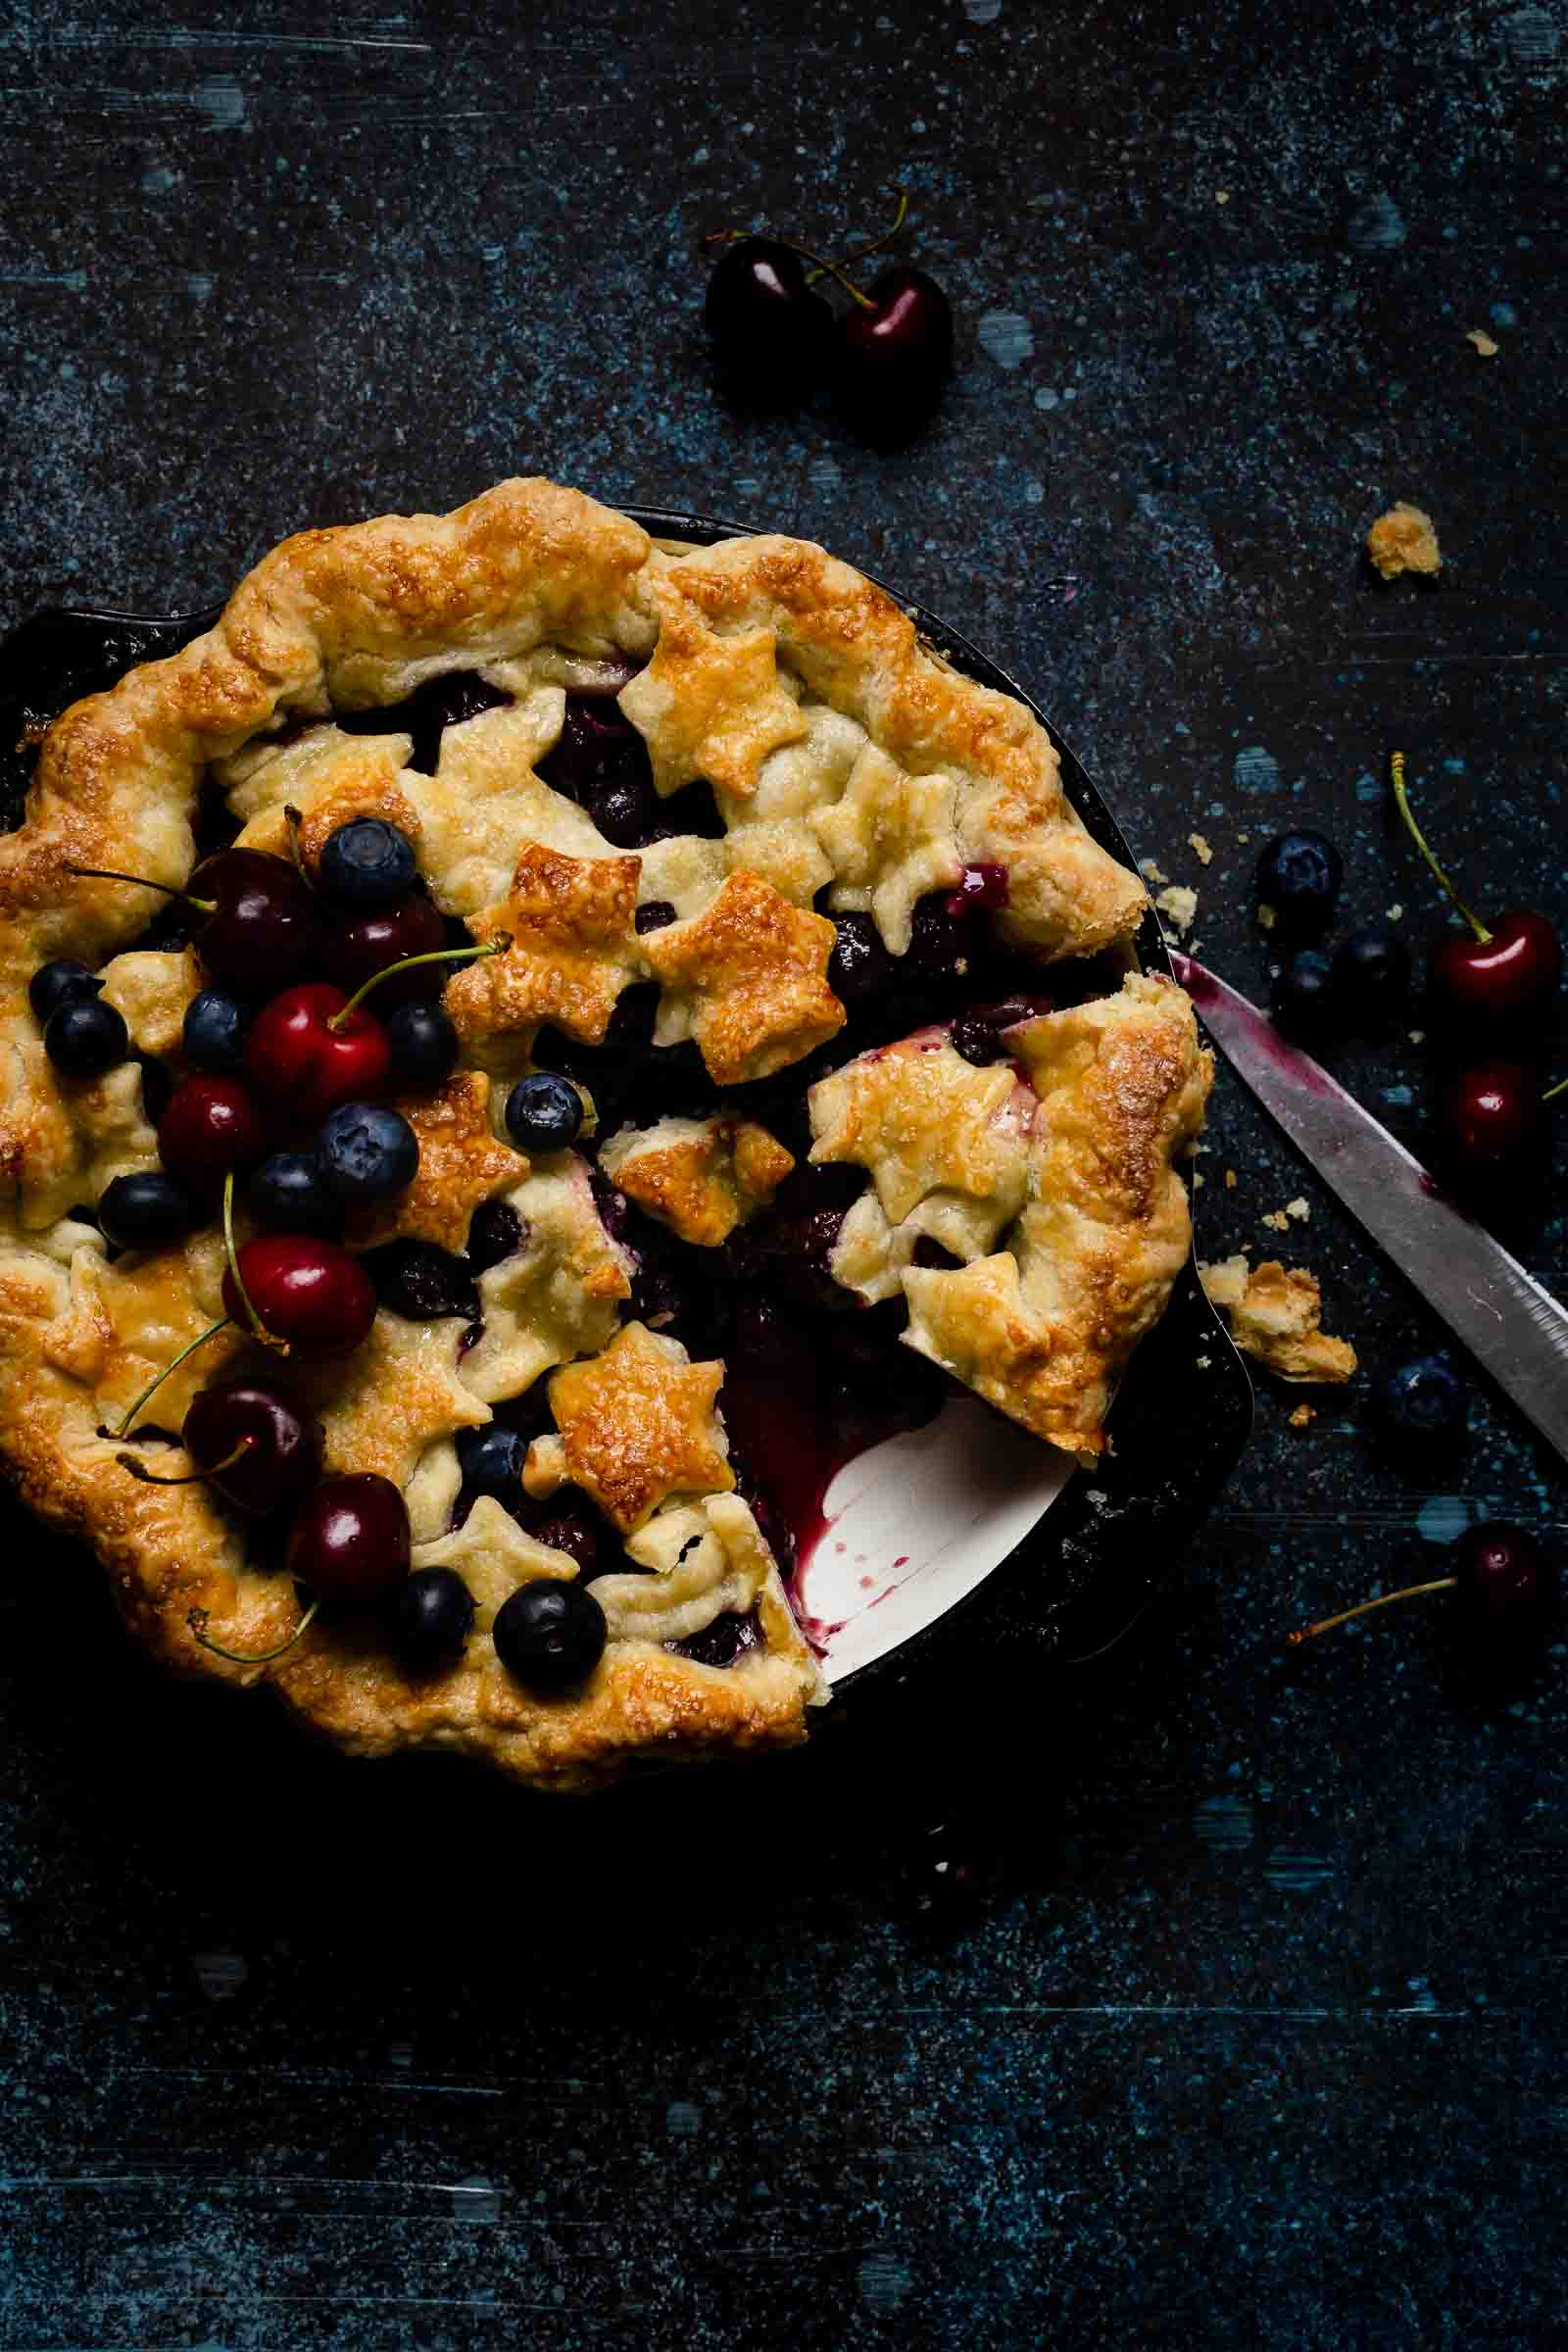 is bursting juicy blueberries together with has a Blueberry Pie